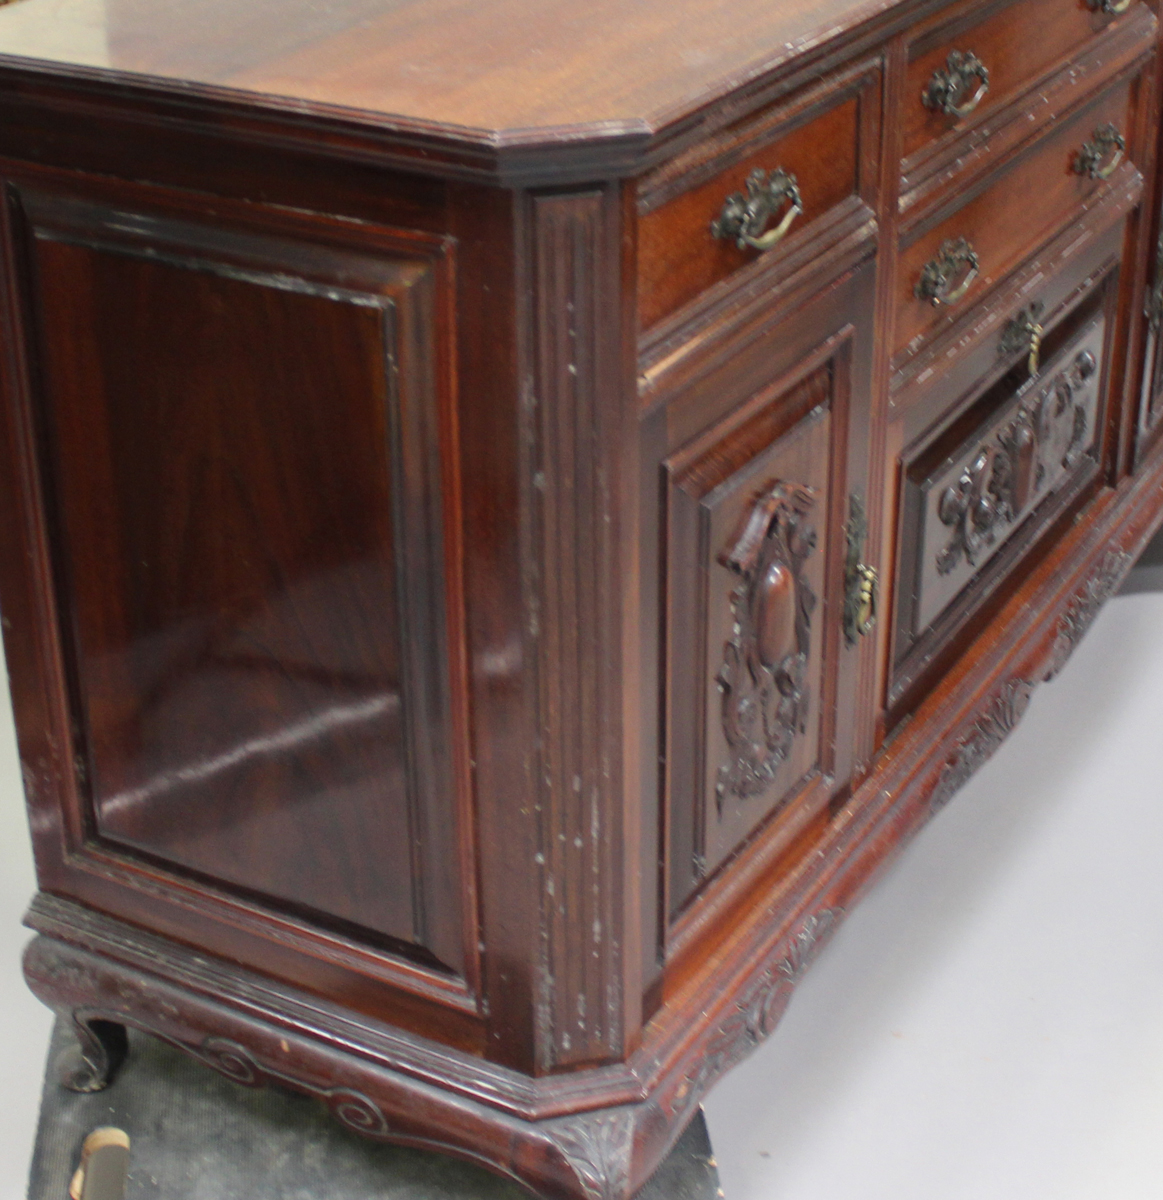 A late Victorian walnut sideboard with carved decoration, fitted with drawers and cupboards, - Image 3 of 4